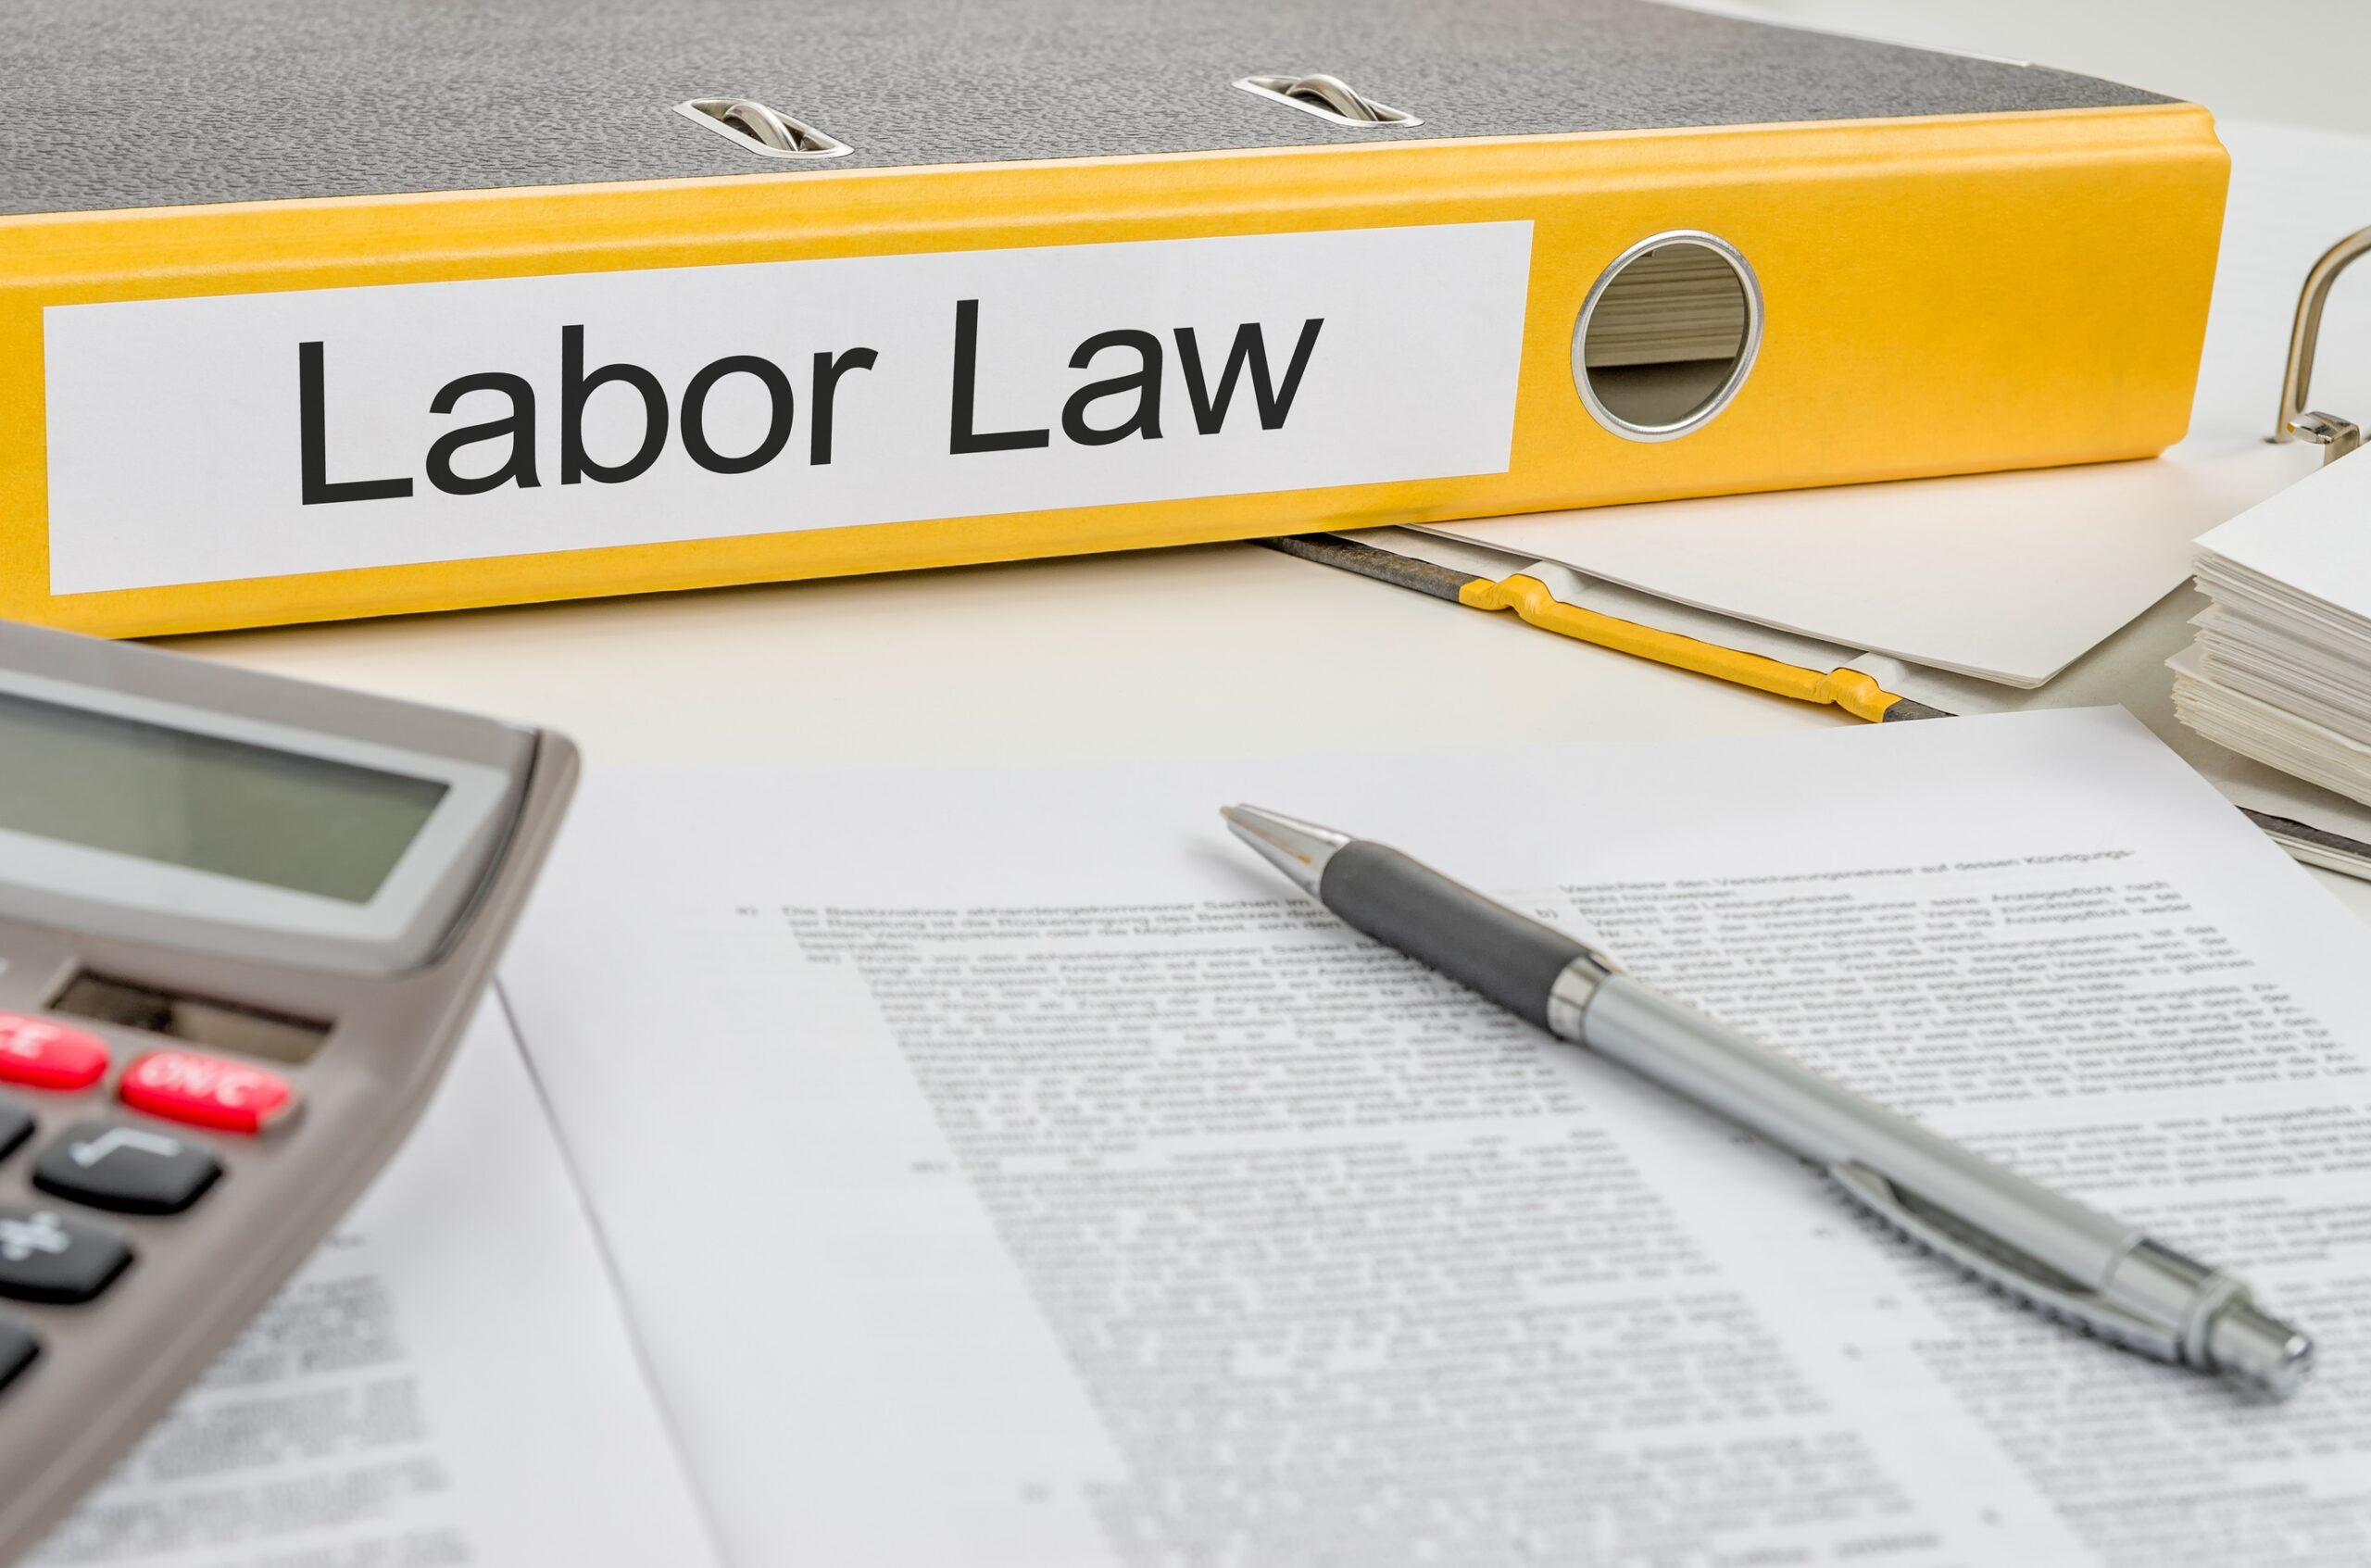 7 Basic Principles of Avoiding Legal Conflicts With Employees